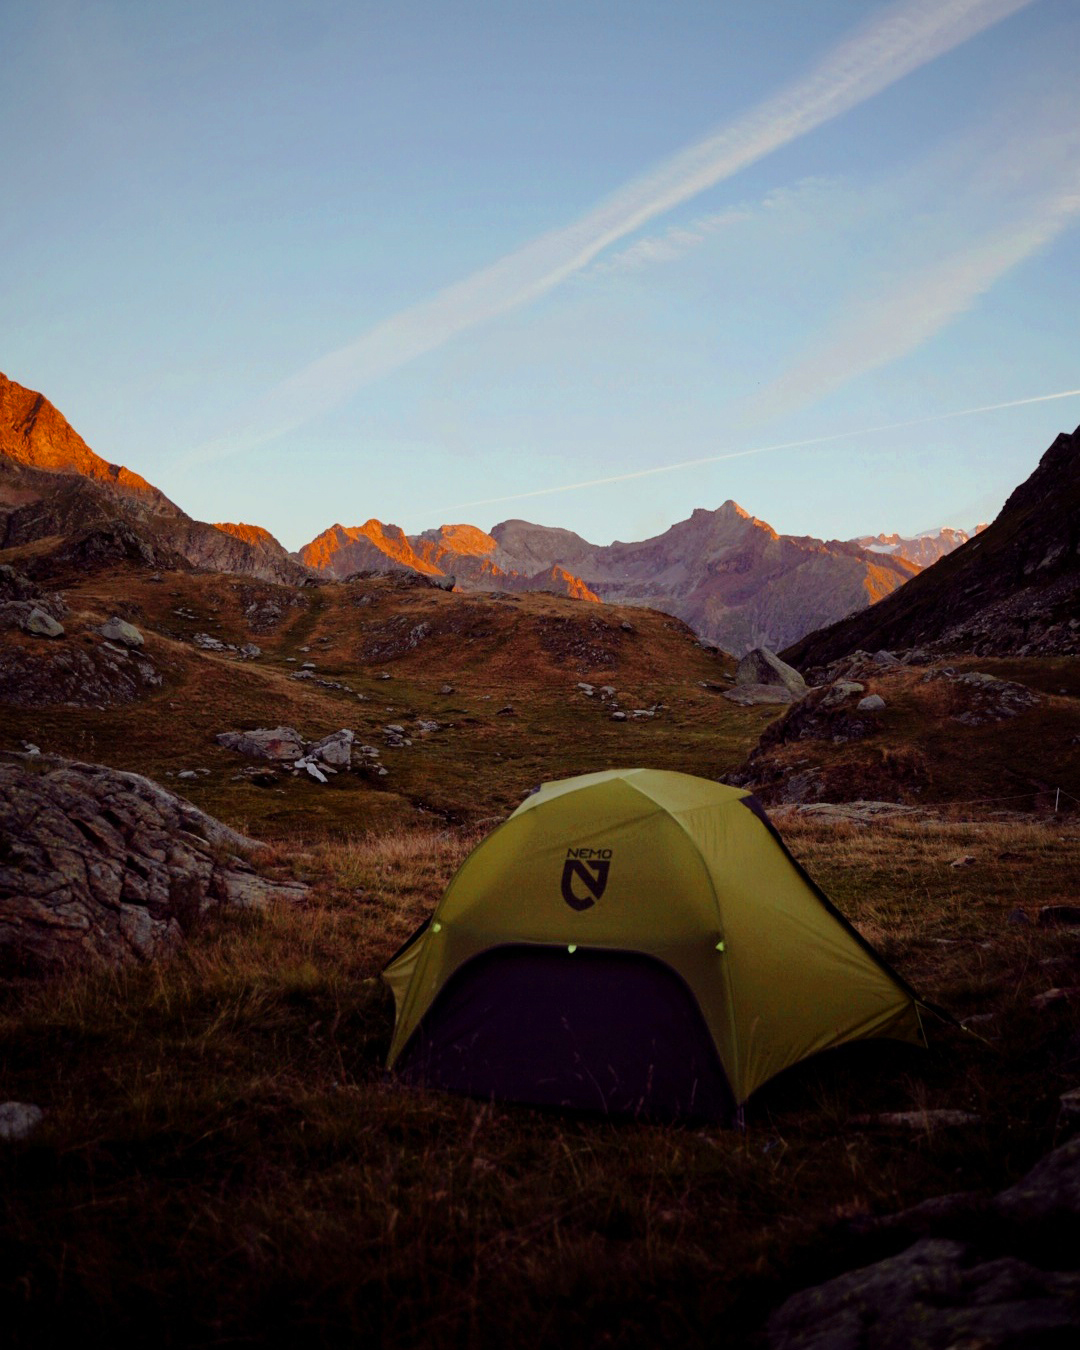 A tent at sunrise with a spectacular mountain view